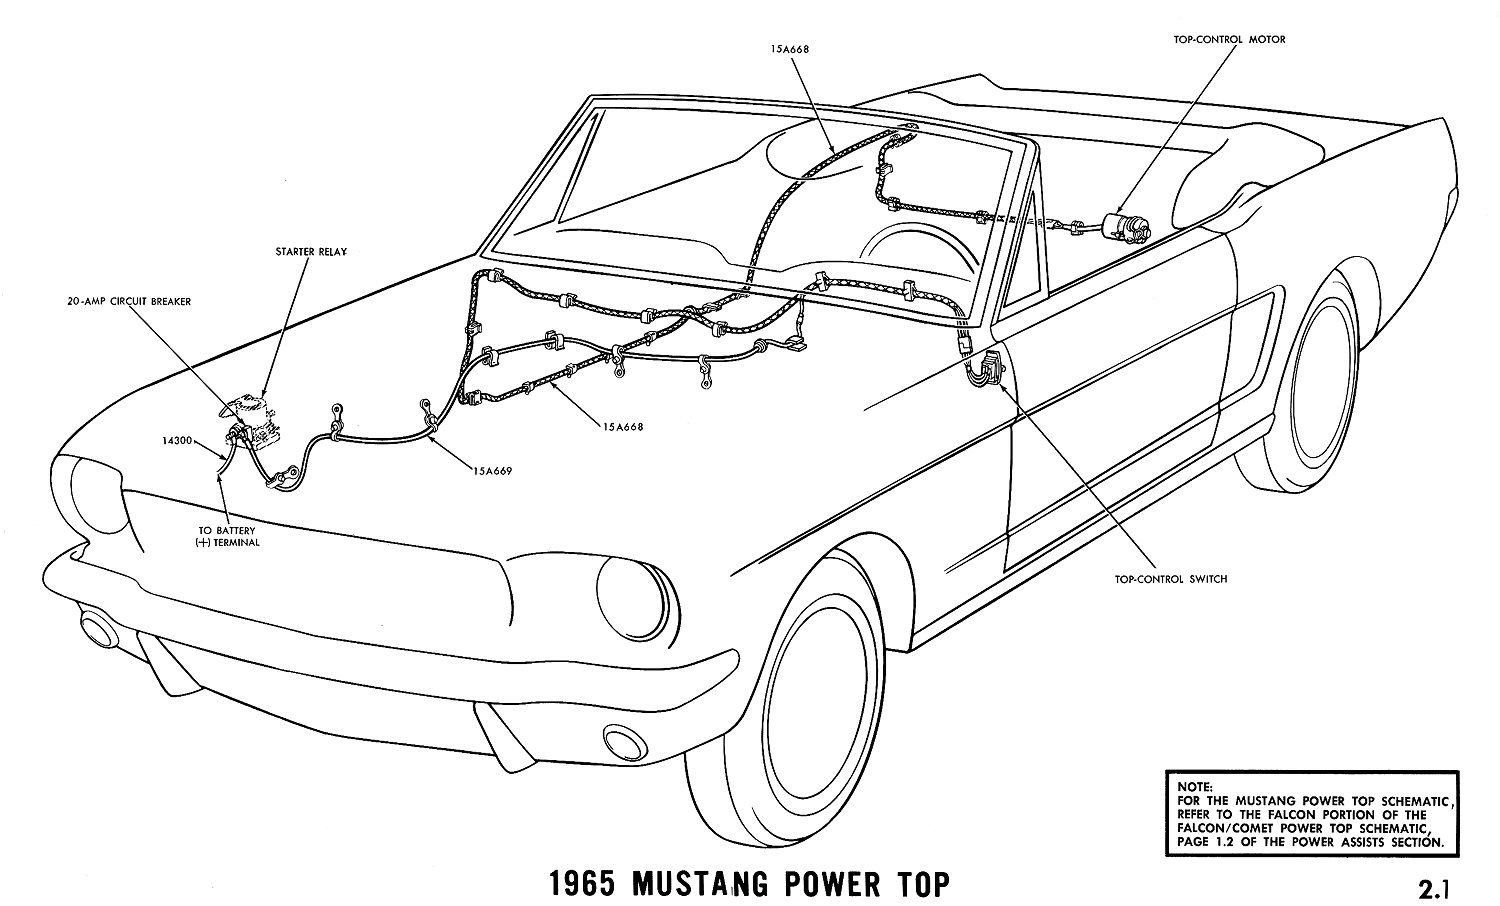 1965j 1965 mustang wiring diagrams average joe restoration 1966 mustang wiring diagrams electrical schematics at nearapp.co